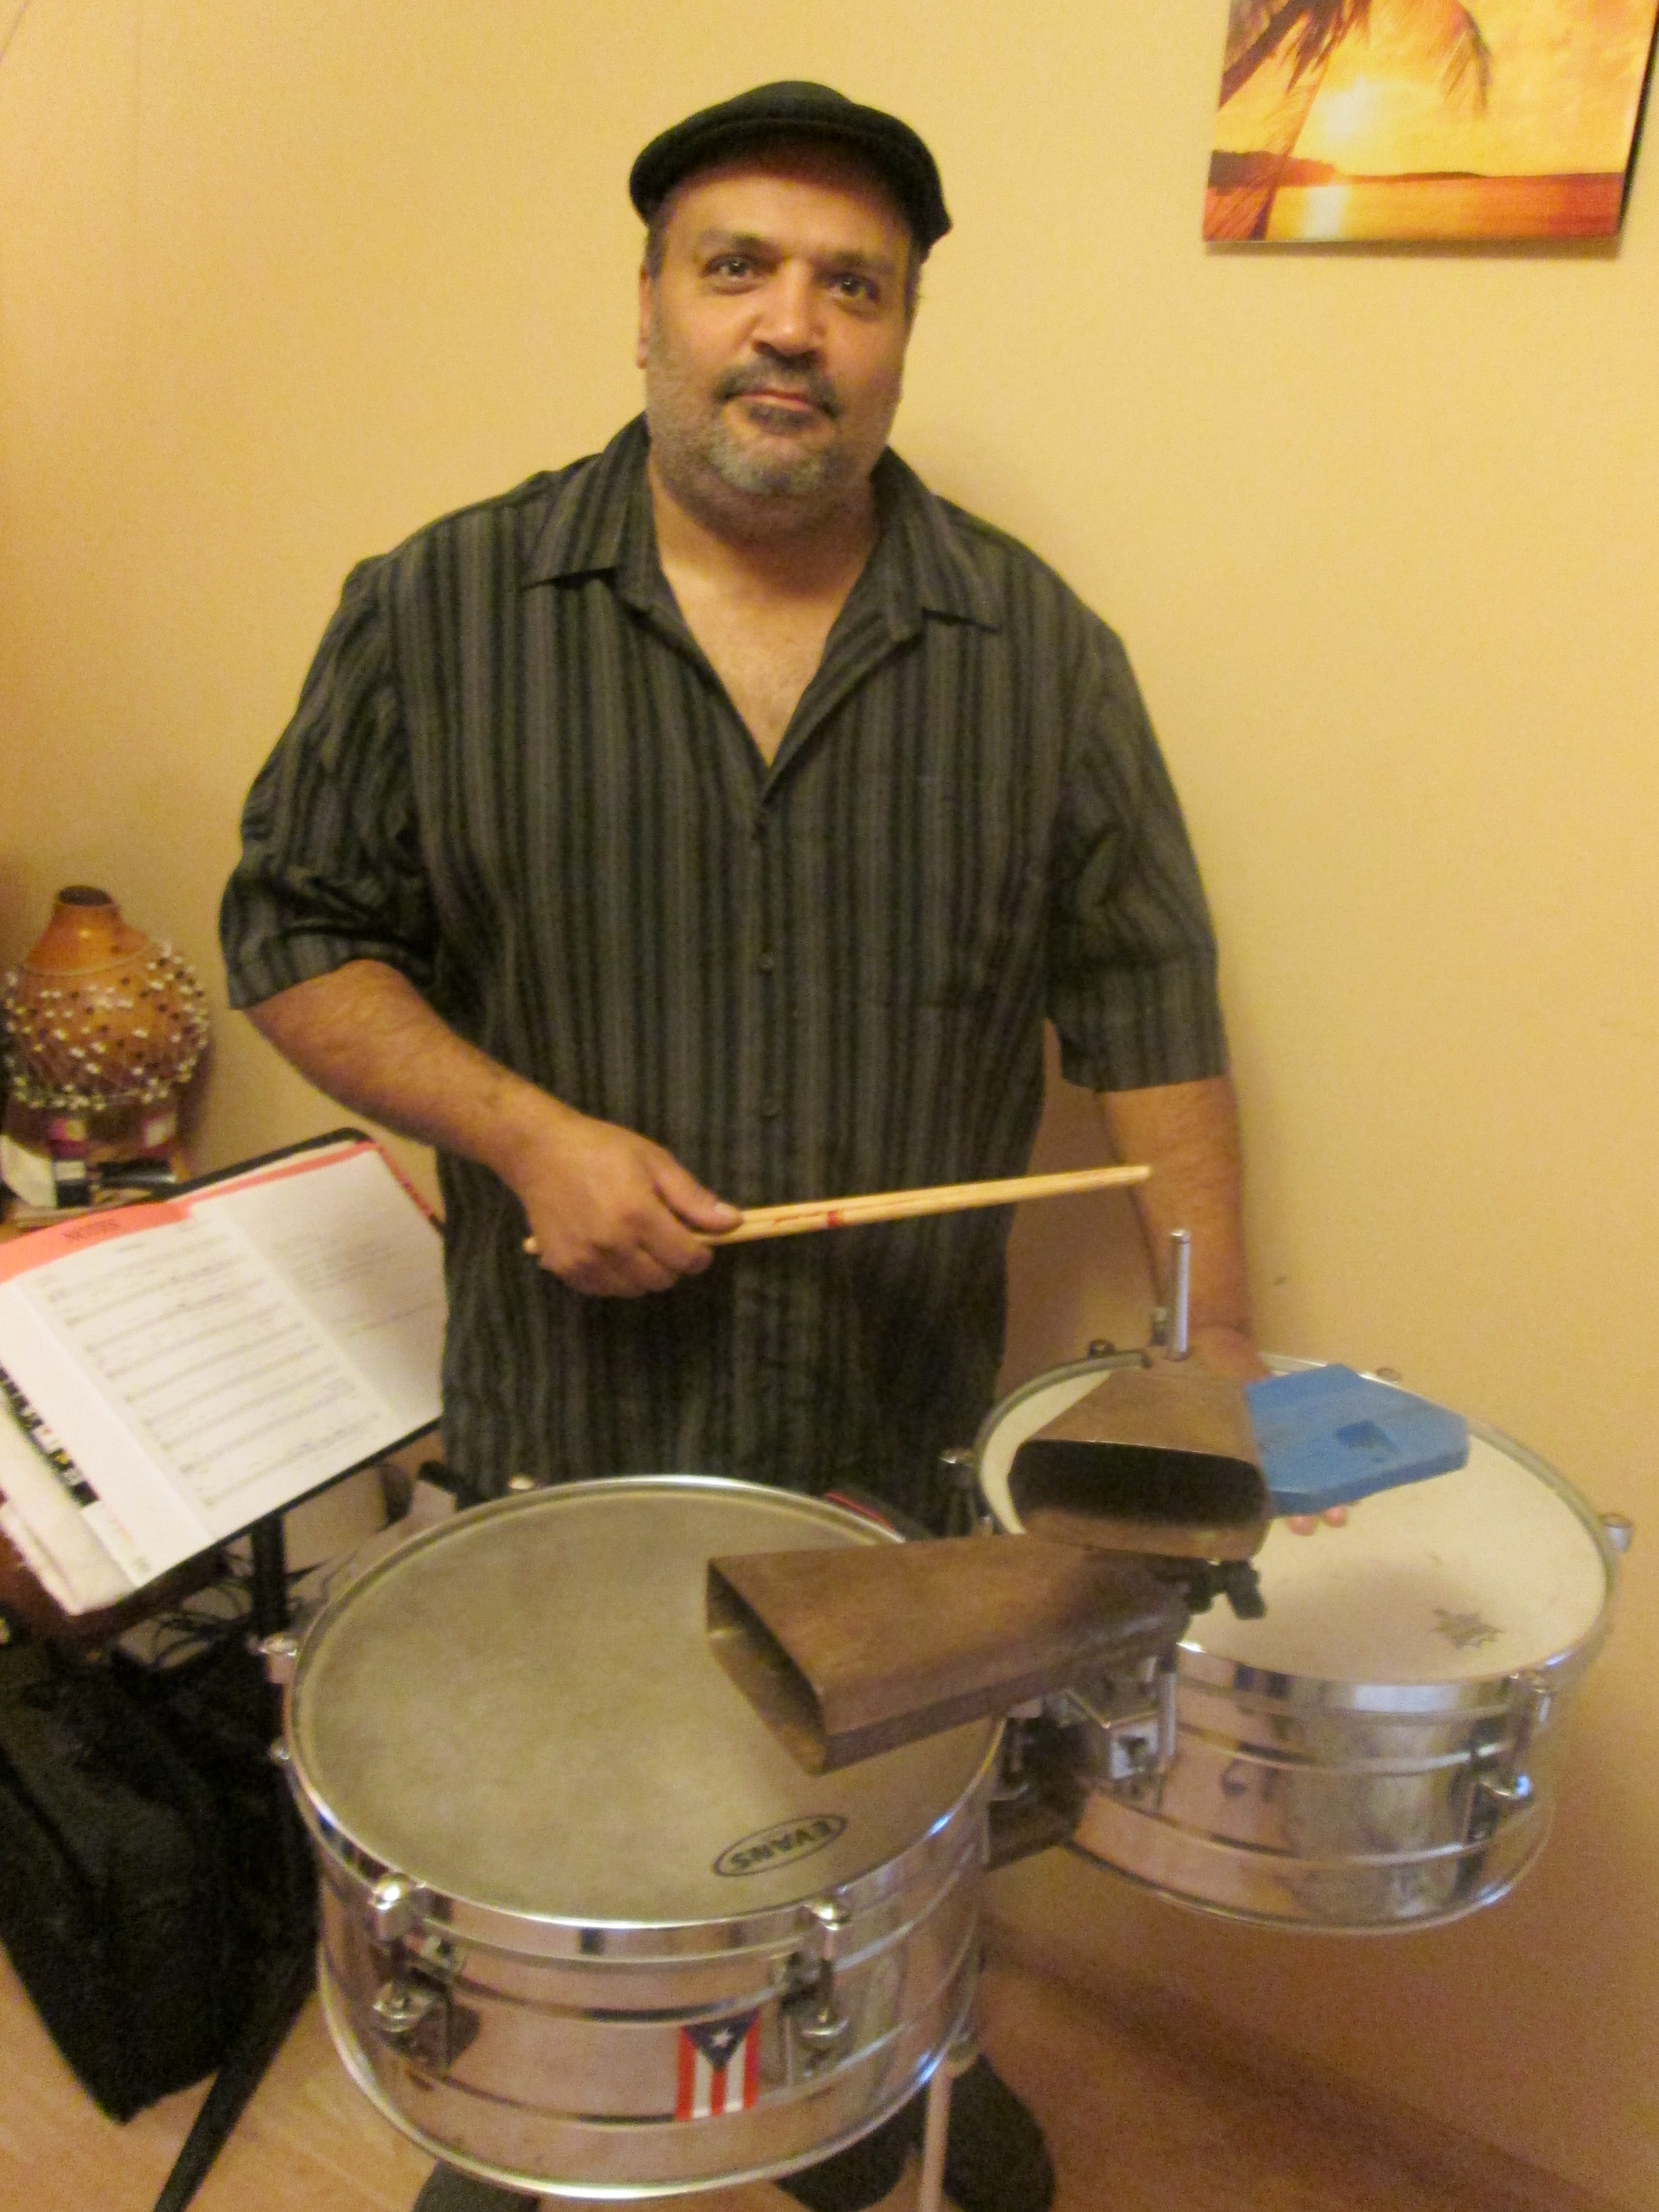 JazzMN with a tribute concert to Latin Jazz master Tito Puente. Piece for Nov 4-7, 2013.